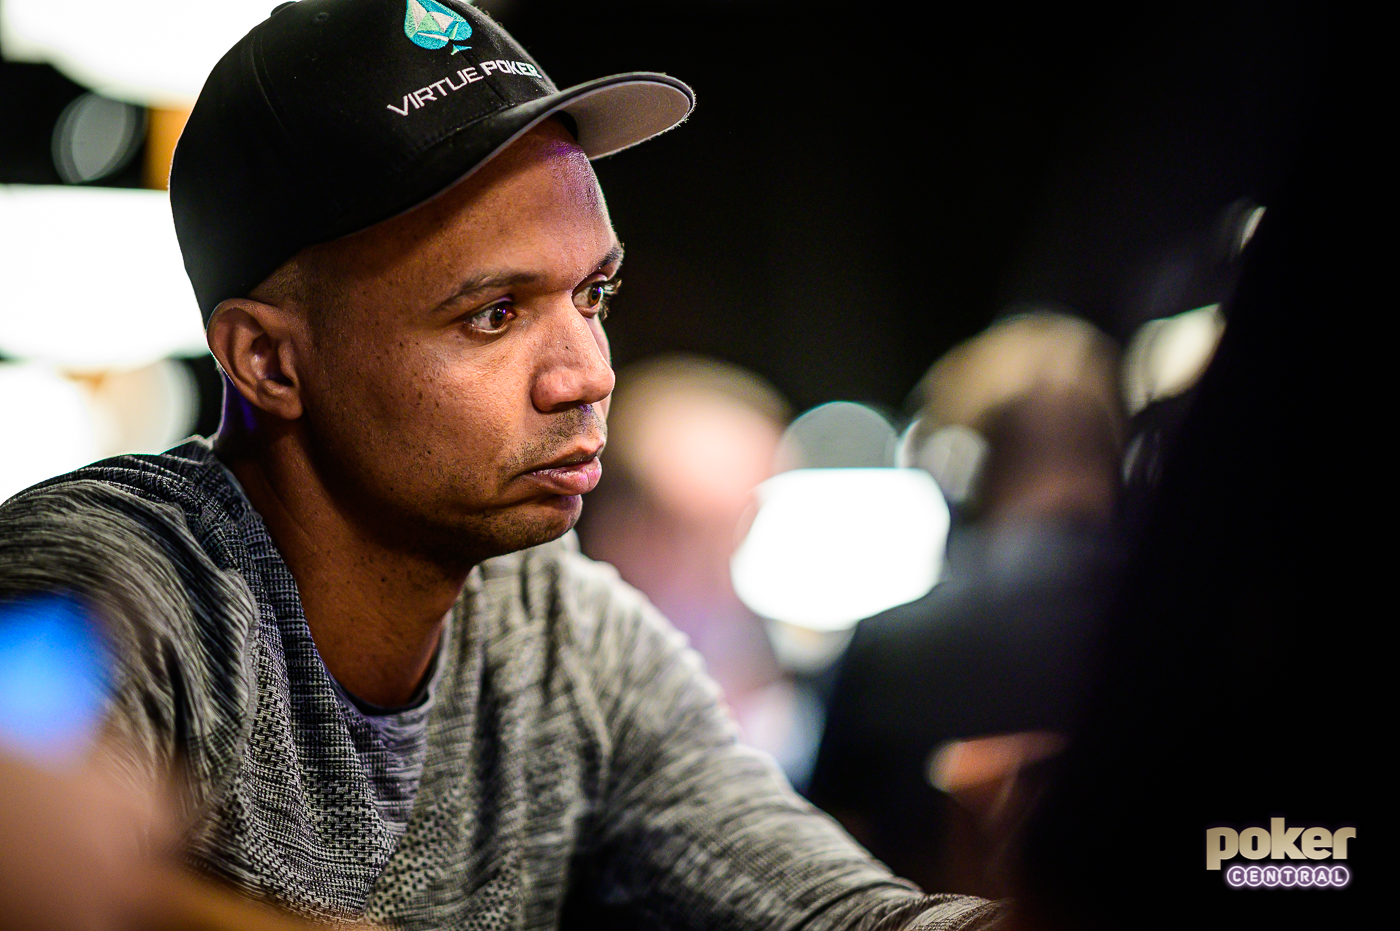 Phil Ivey during his first appearance at the 2019 World Series of Poker.